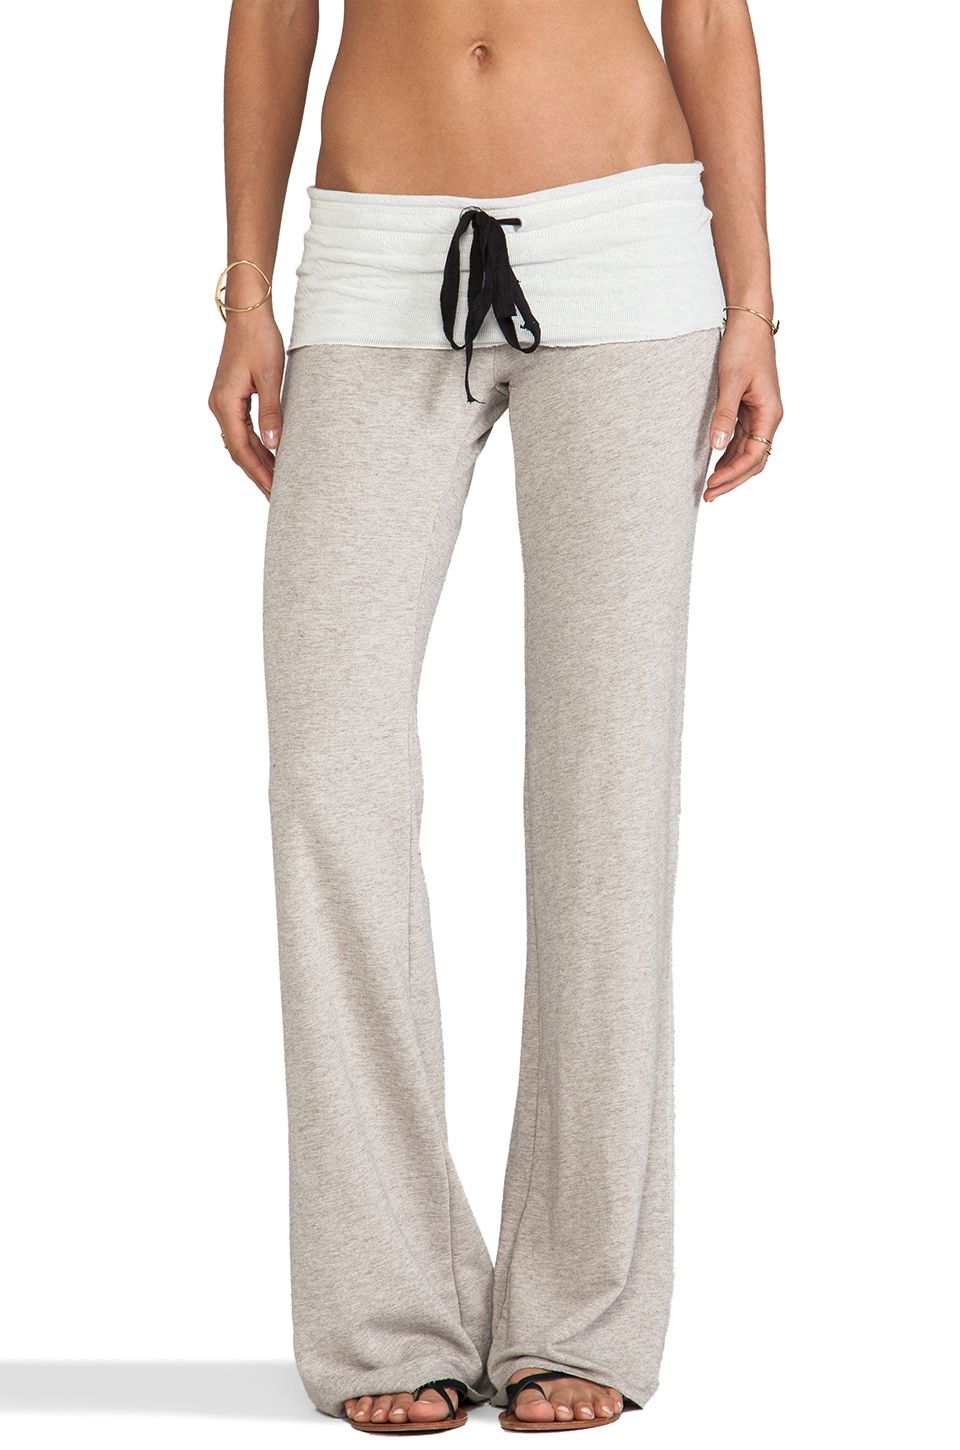 Tylie Wide Leg French Terry Sweatpant in Oat from REVOLVEclothing..ultimate comfy pants!! Need some for winter.